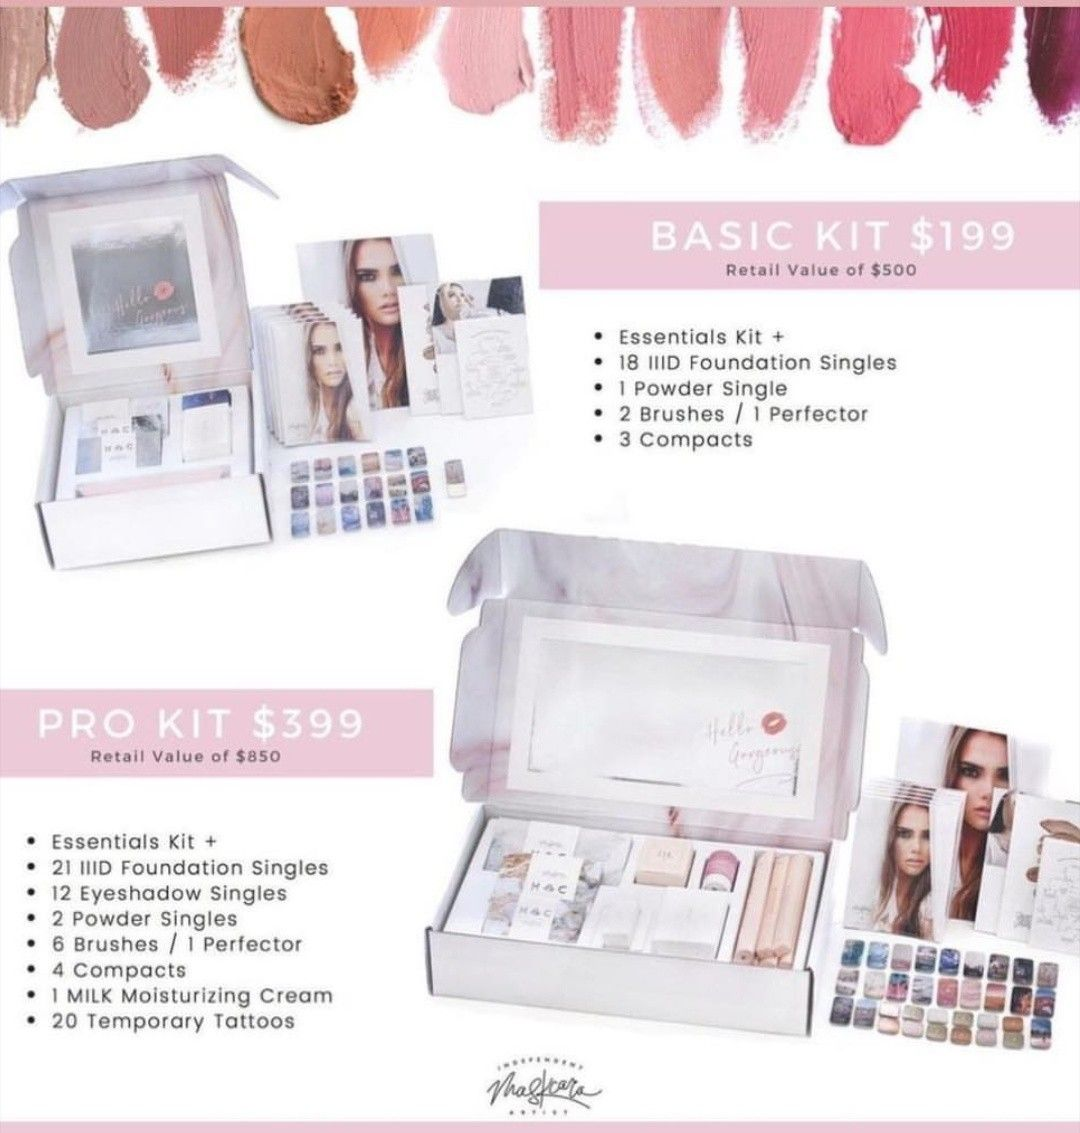 Whats inside a maskcara artist kit? Basic kit for maskcara